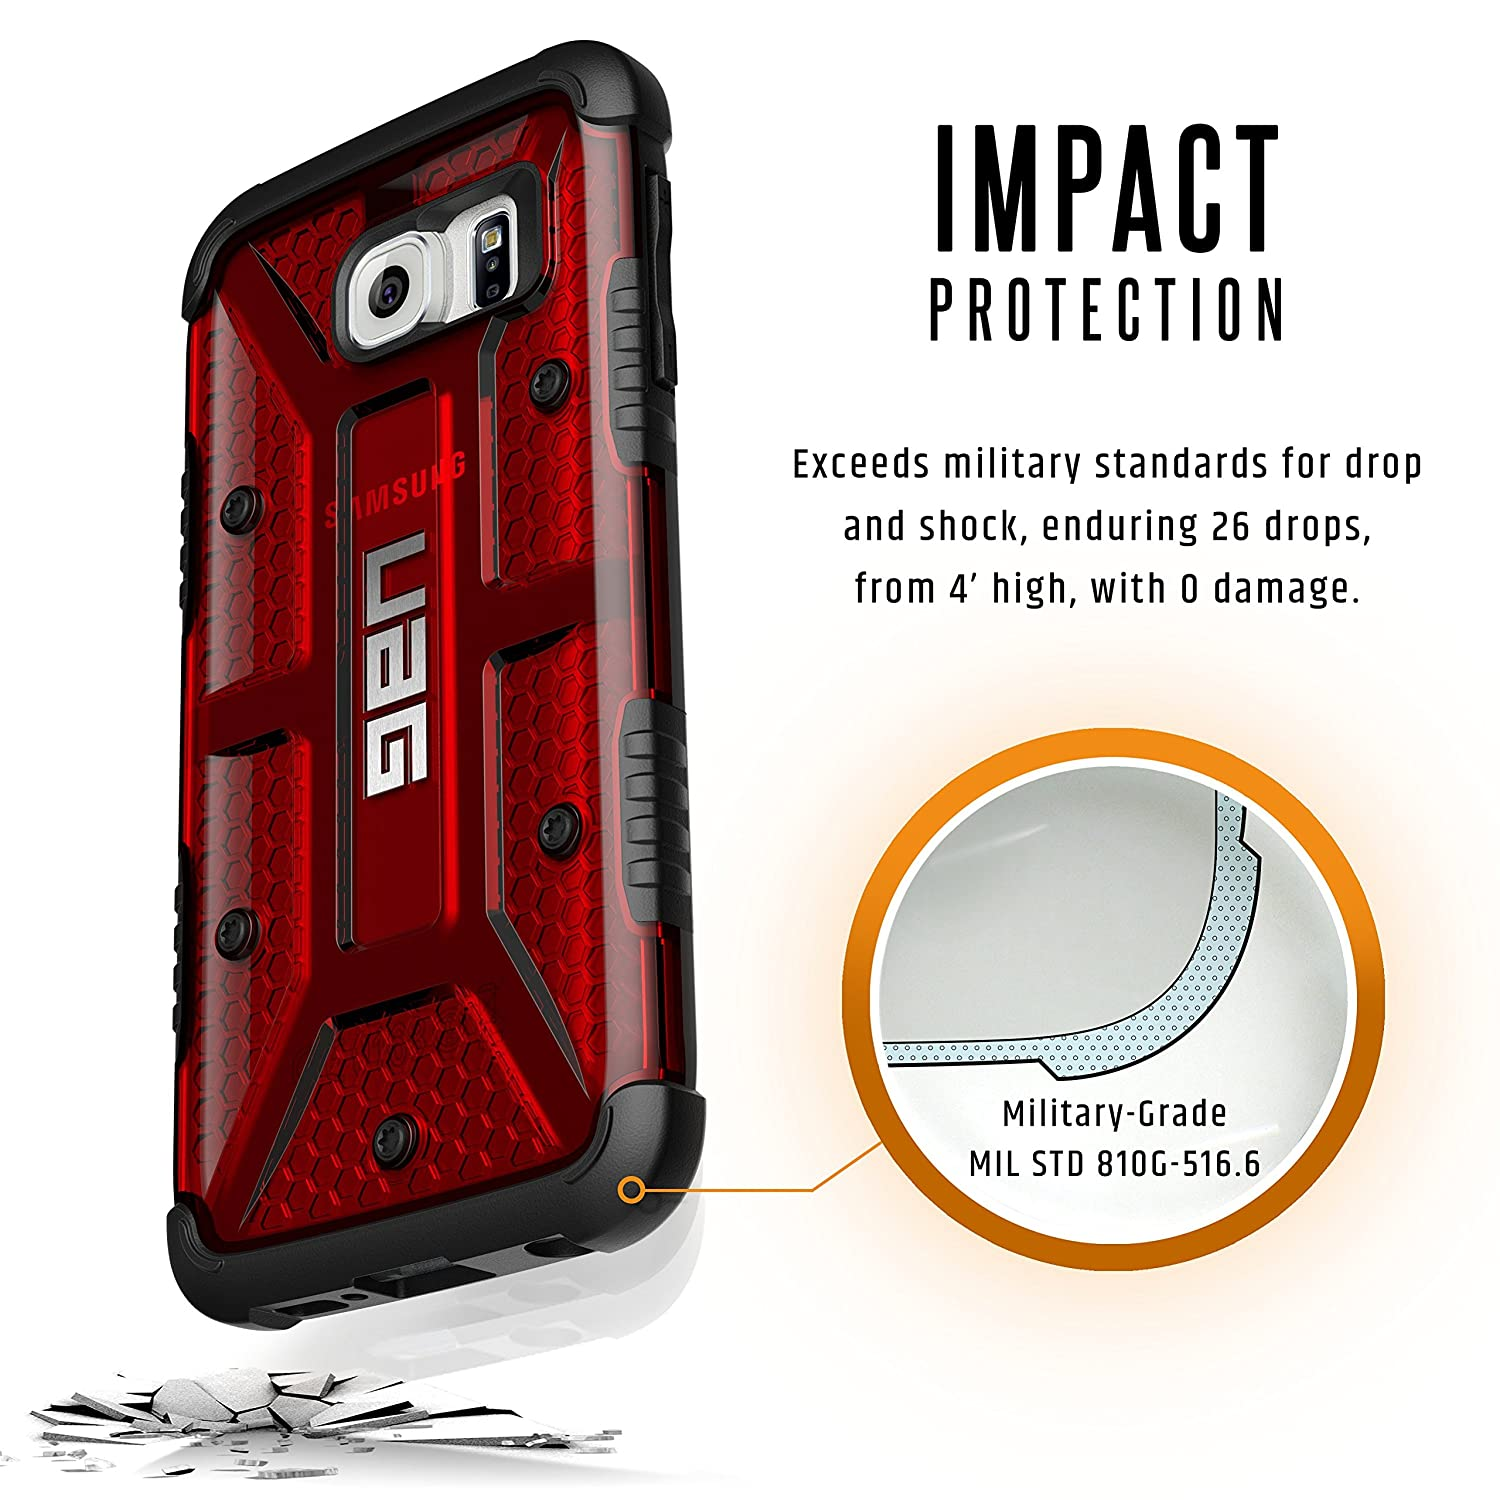 Galaxy s6 cases shop samsung cases online uag urban armor gear - Amazon Com Uag Samsung Galaxy S6 5 1 Inch Screen Feather Light Composite Magma Military Drop Tested Phone Case Cell Phones Accessories